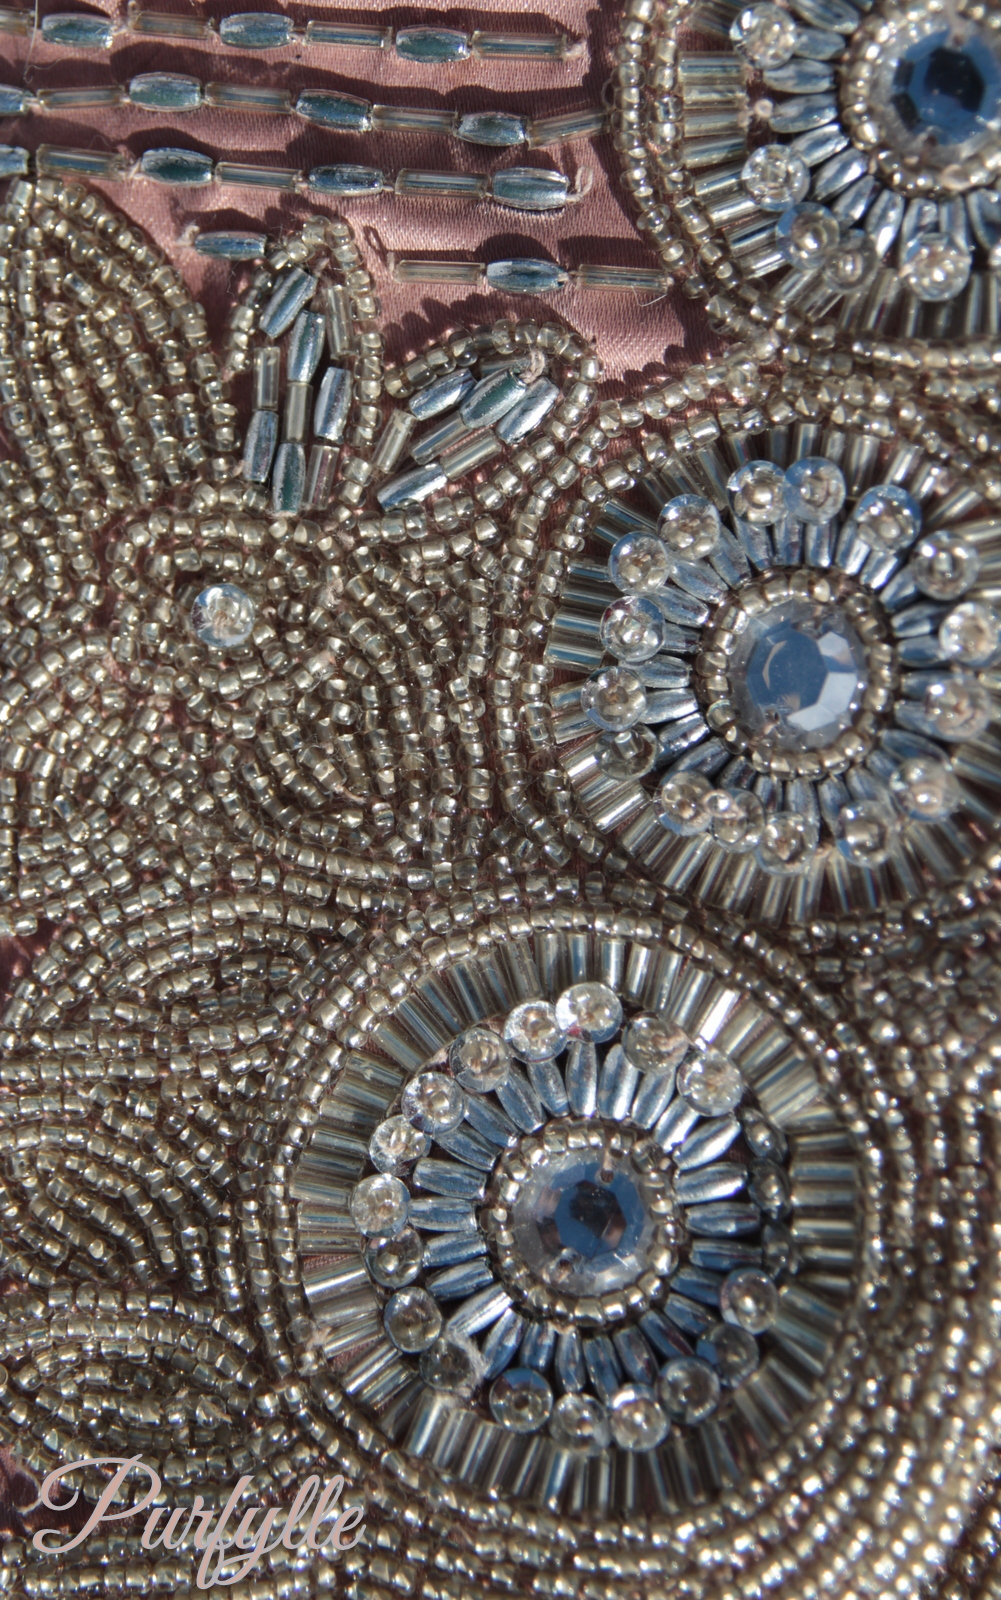 Beaded clutch - close up of bead detail work